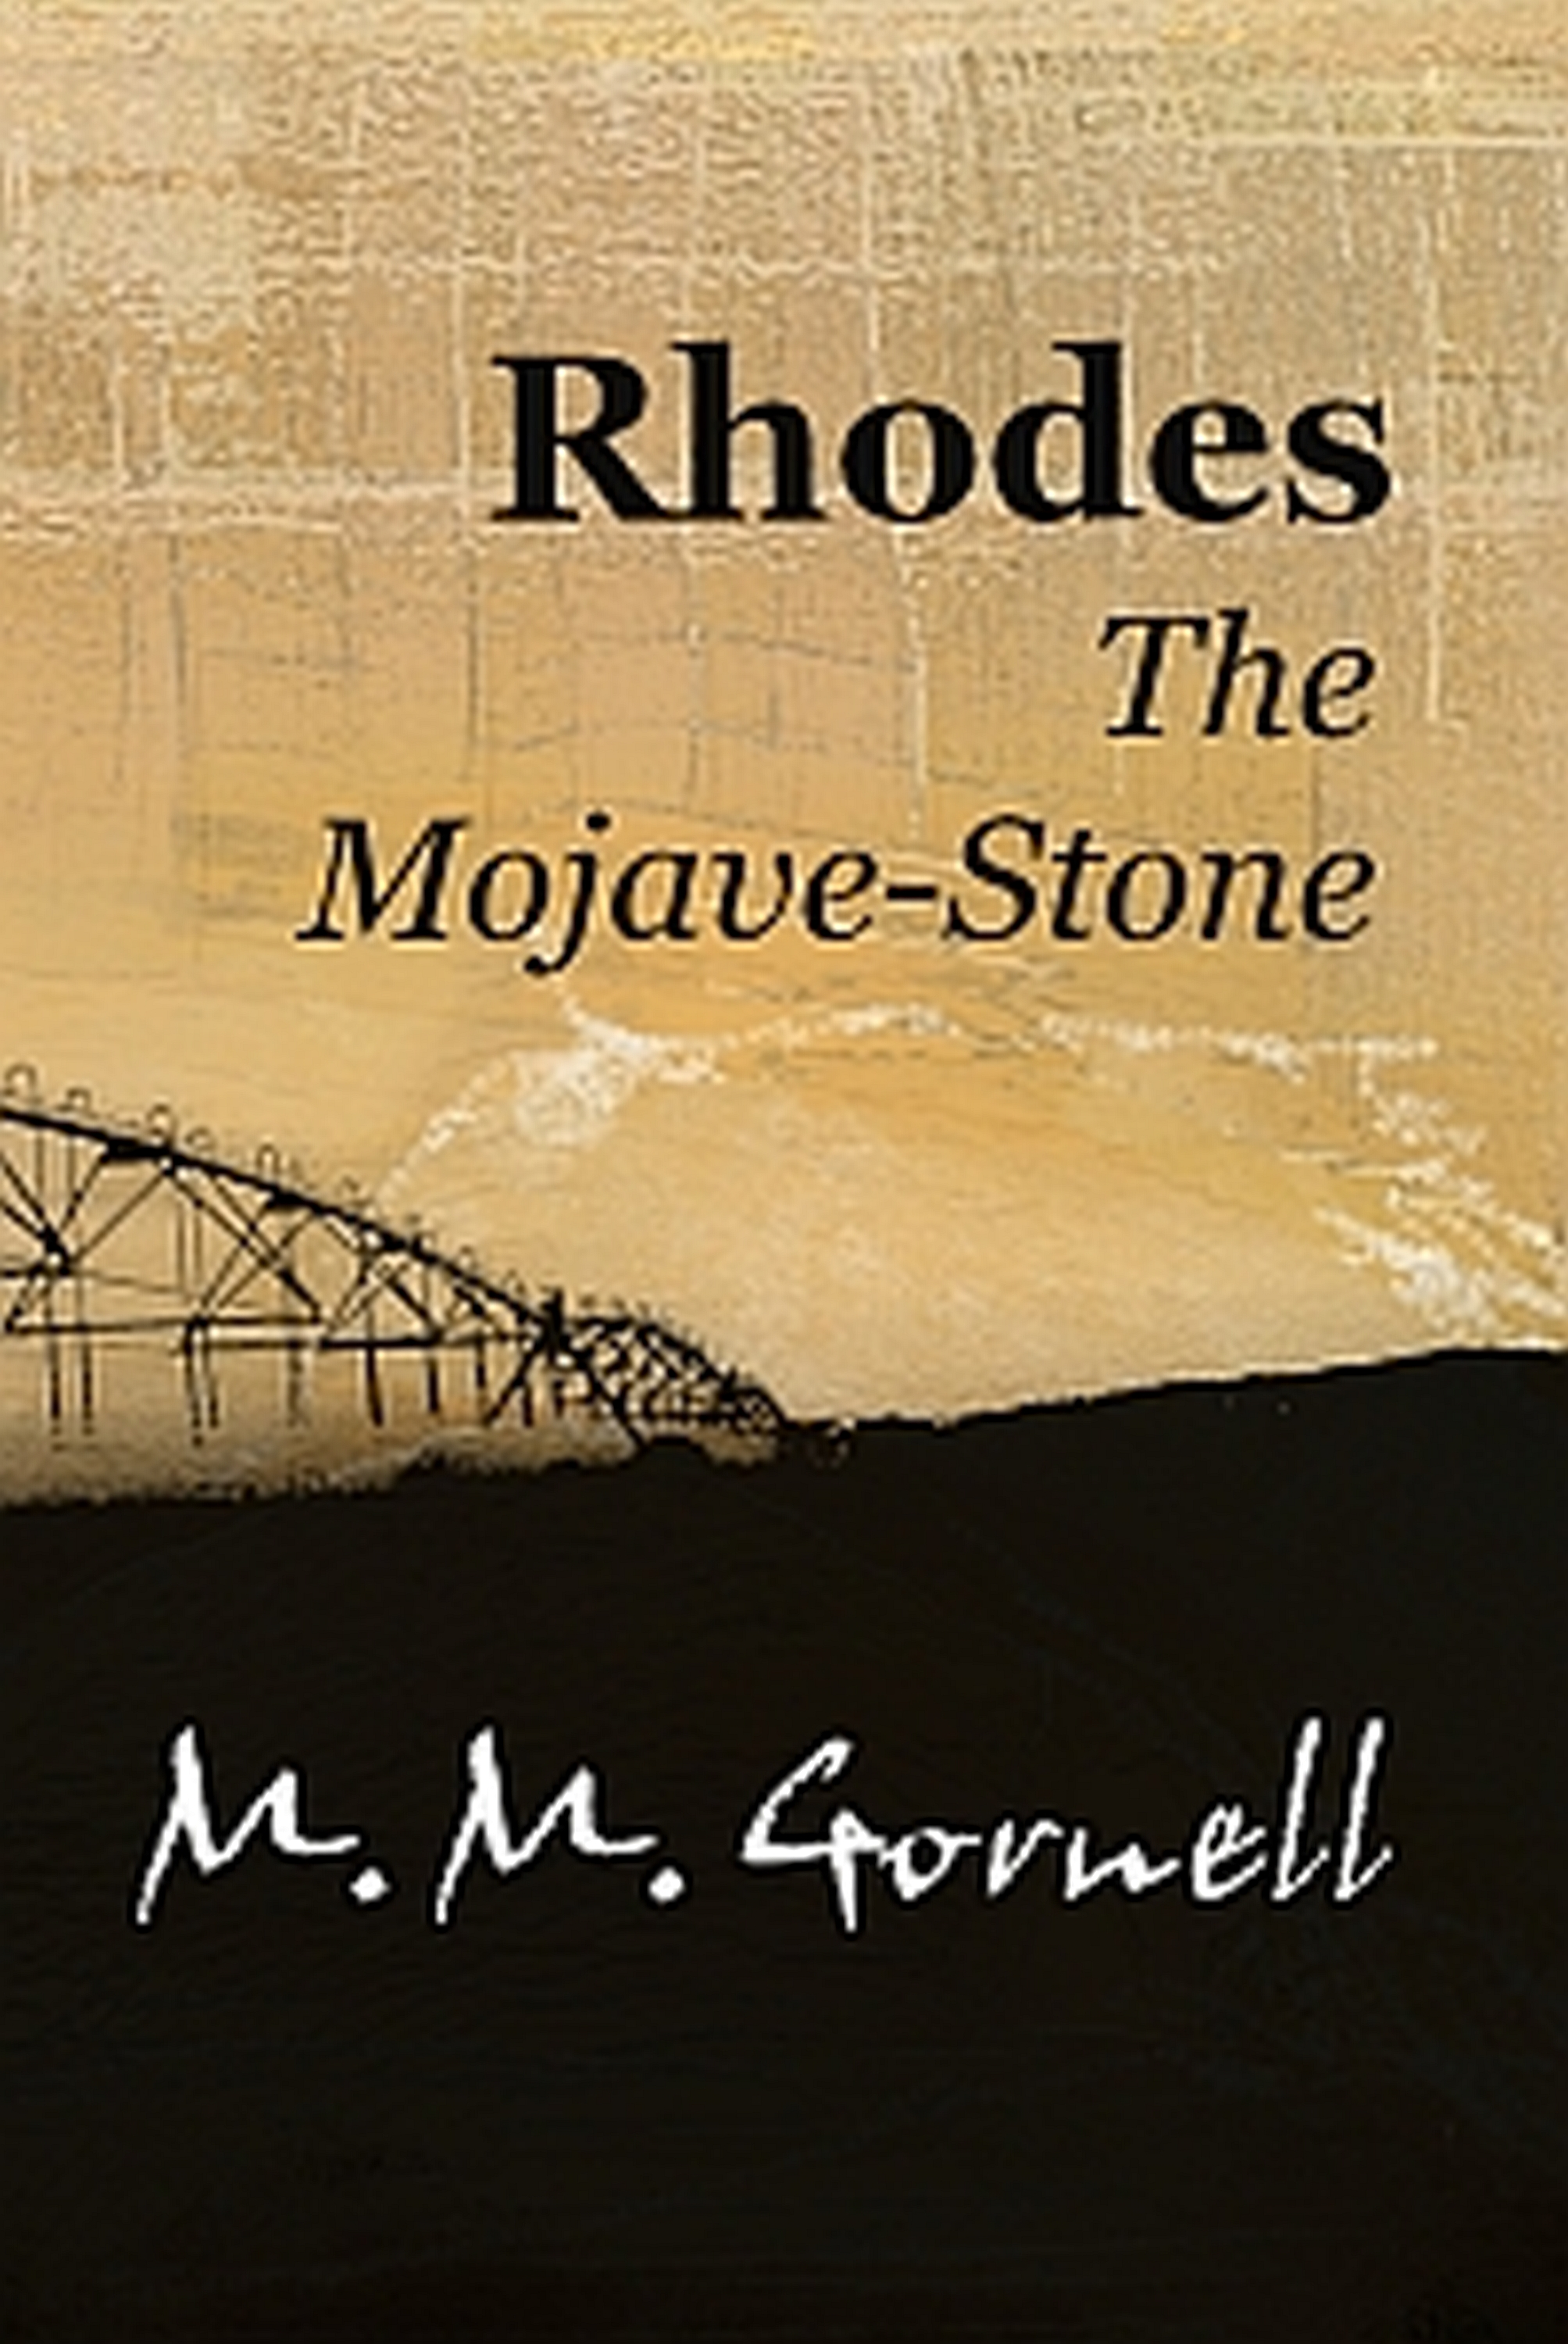 Rhodes The Mojave-Stone